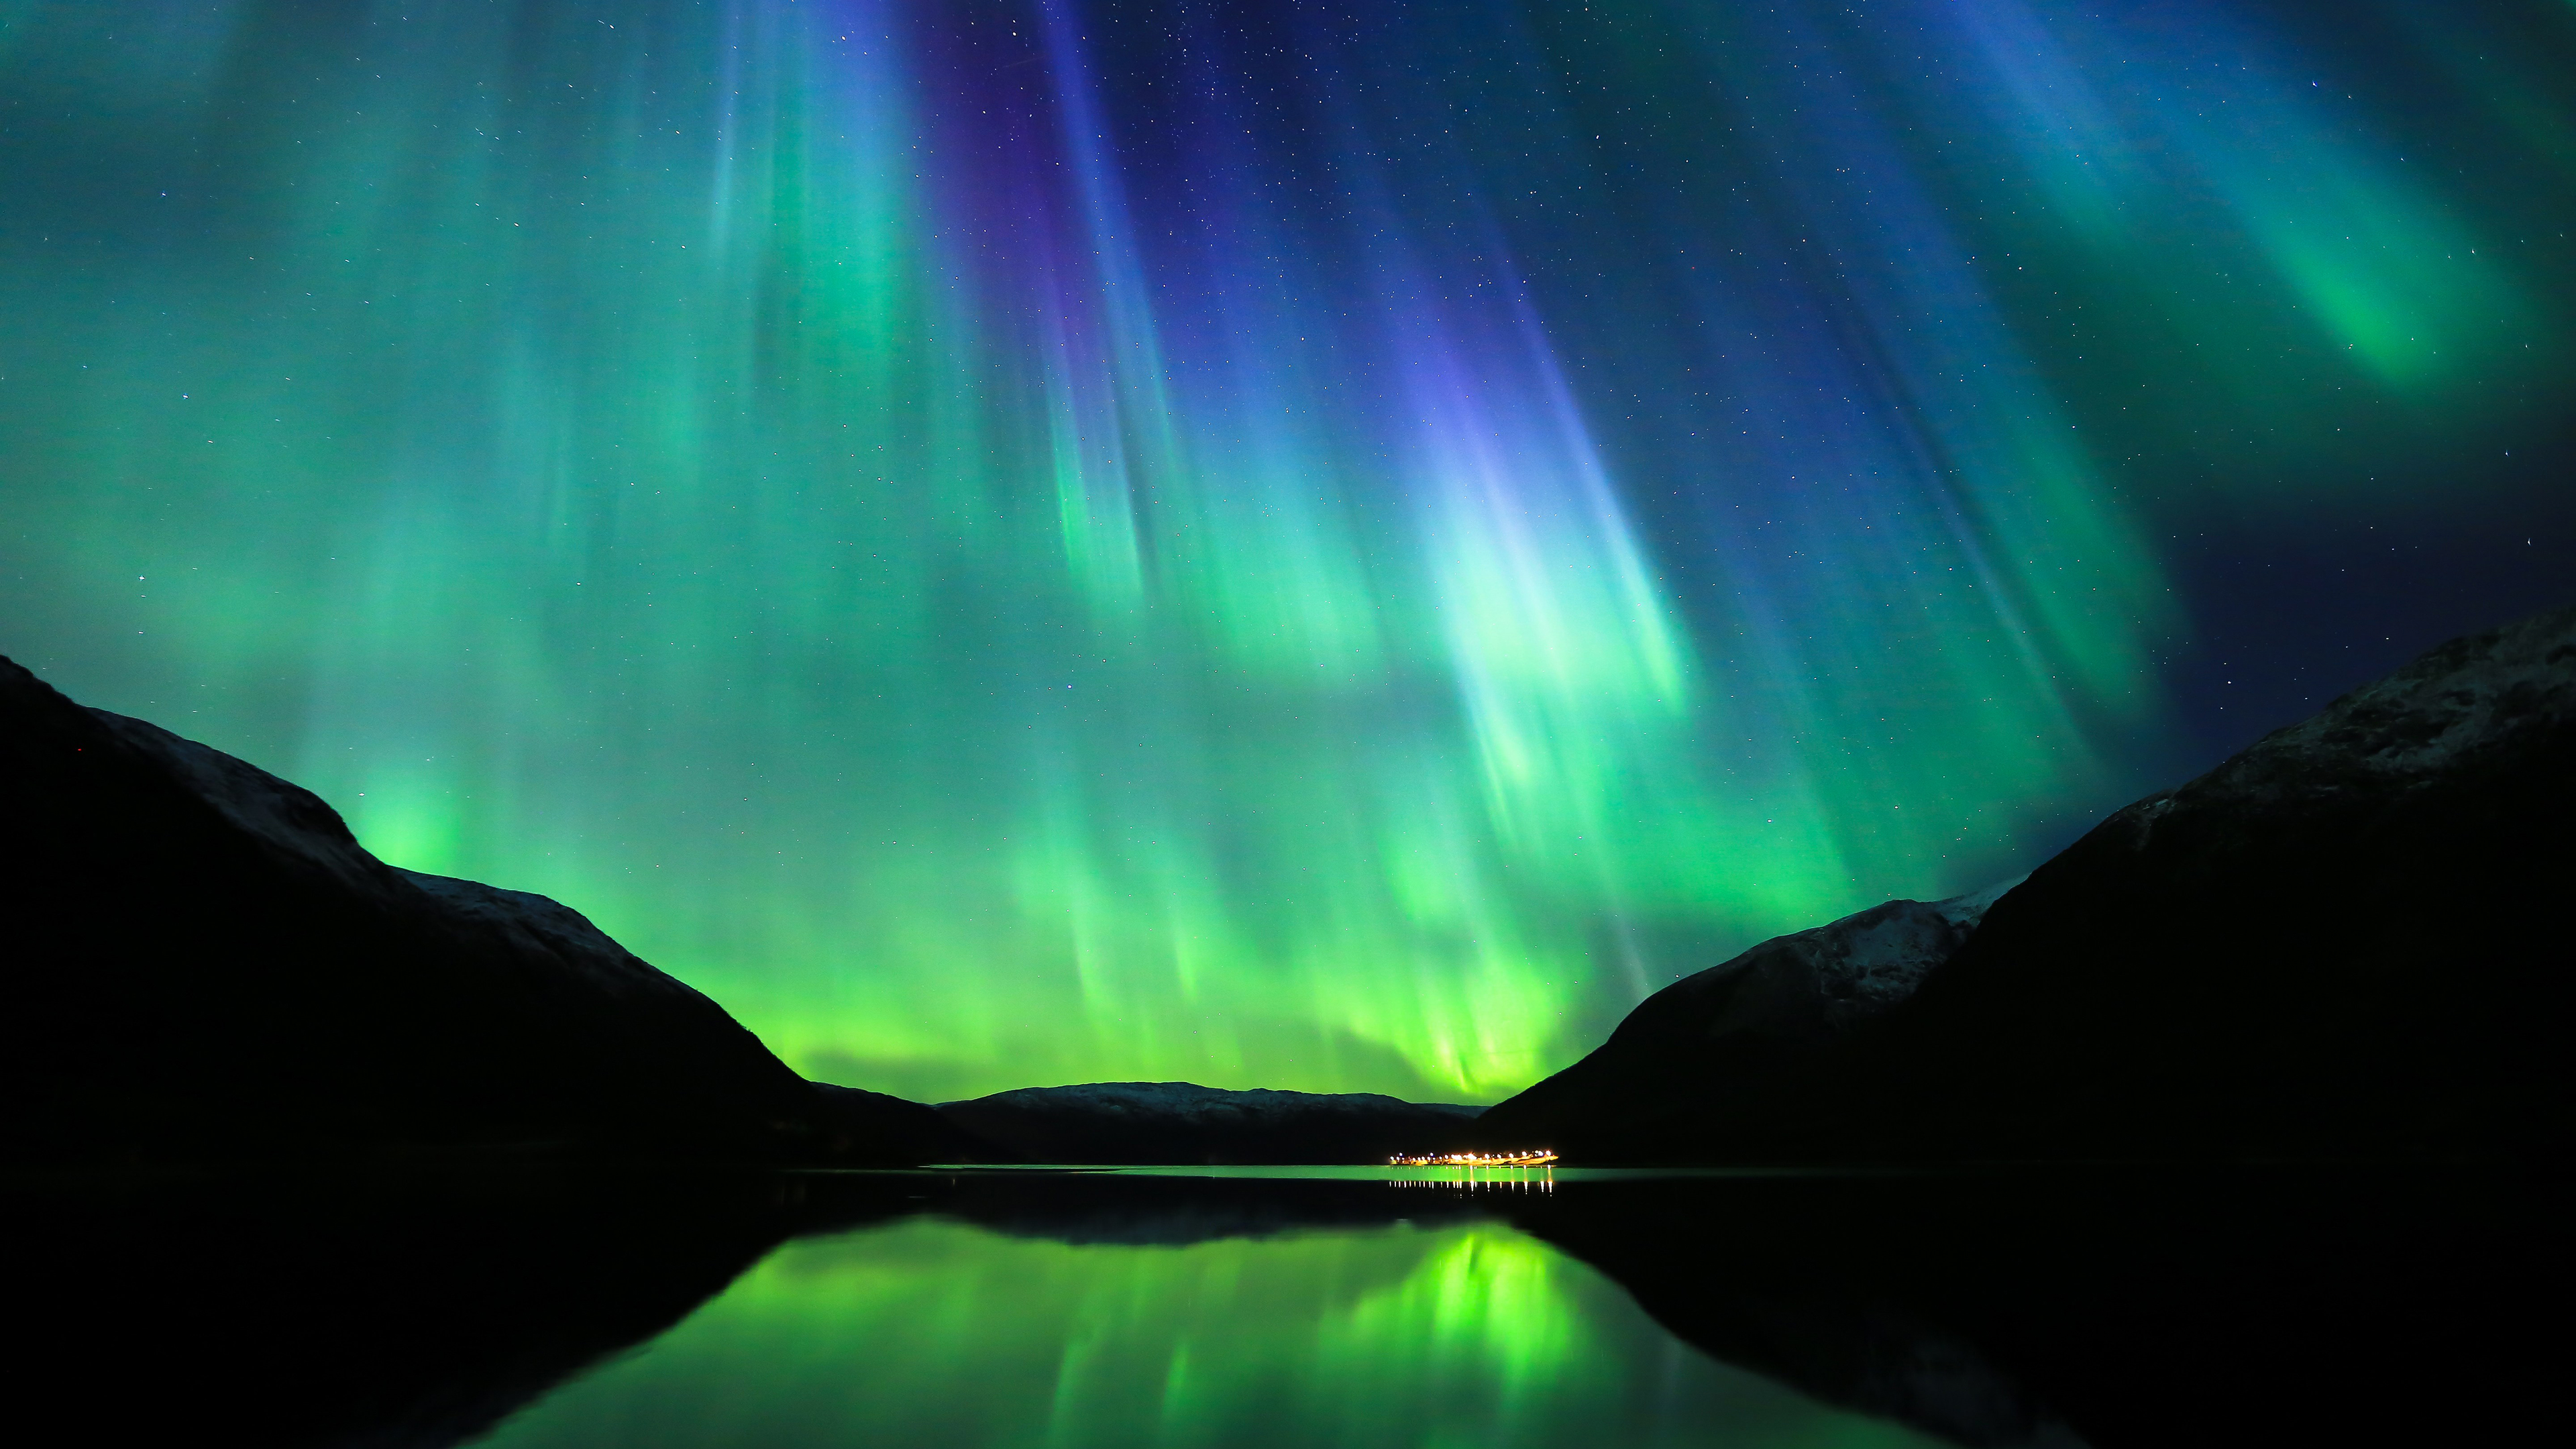 720x1560 Aurora 4k 720x1560 Resolution Wallpaper Hd Nature 4k Wallpapers Images Photos And Background